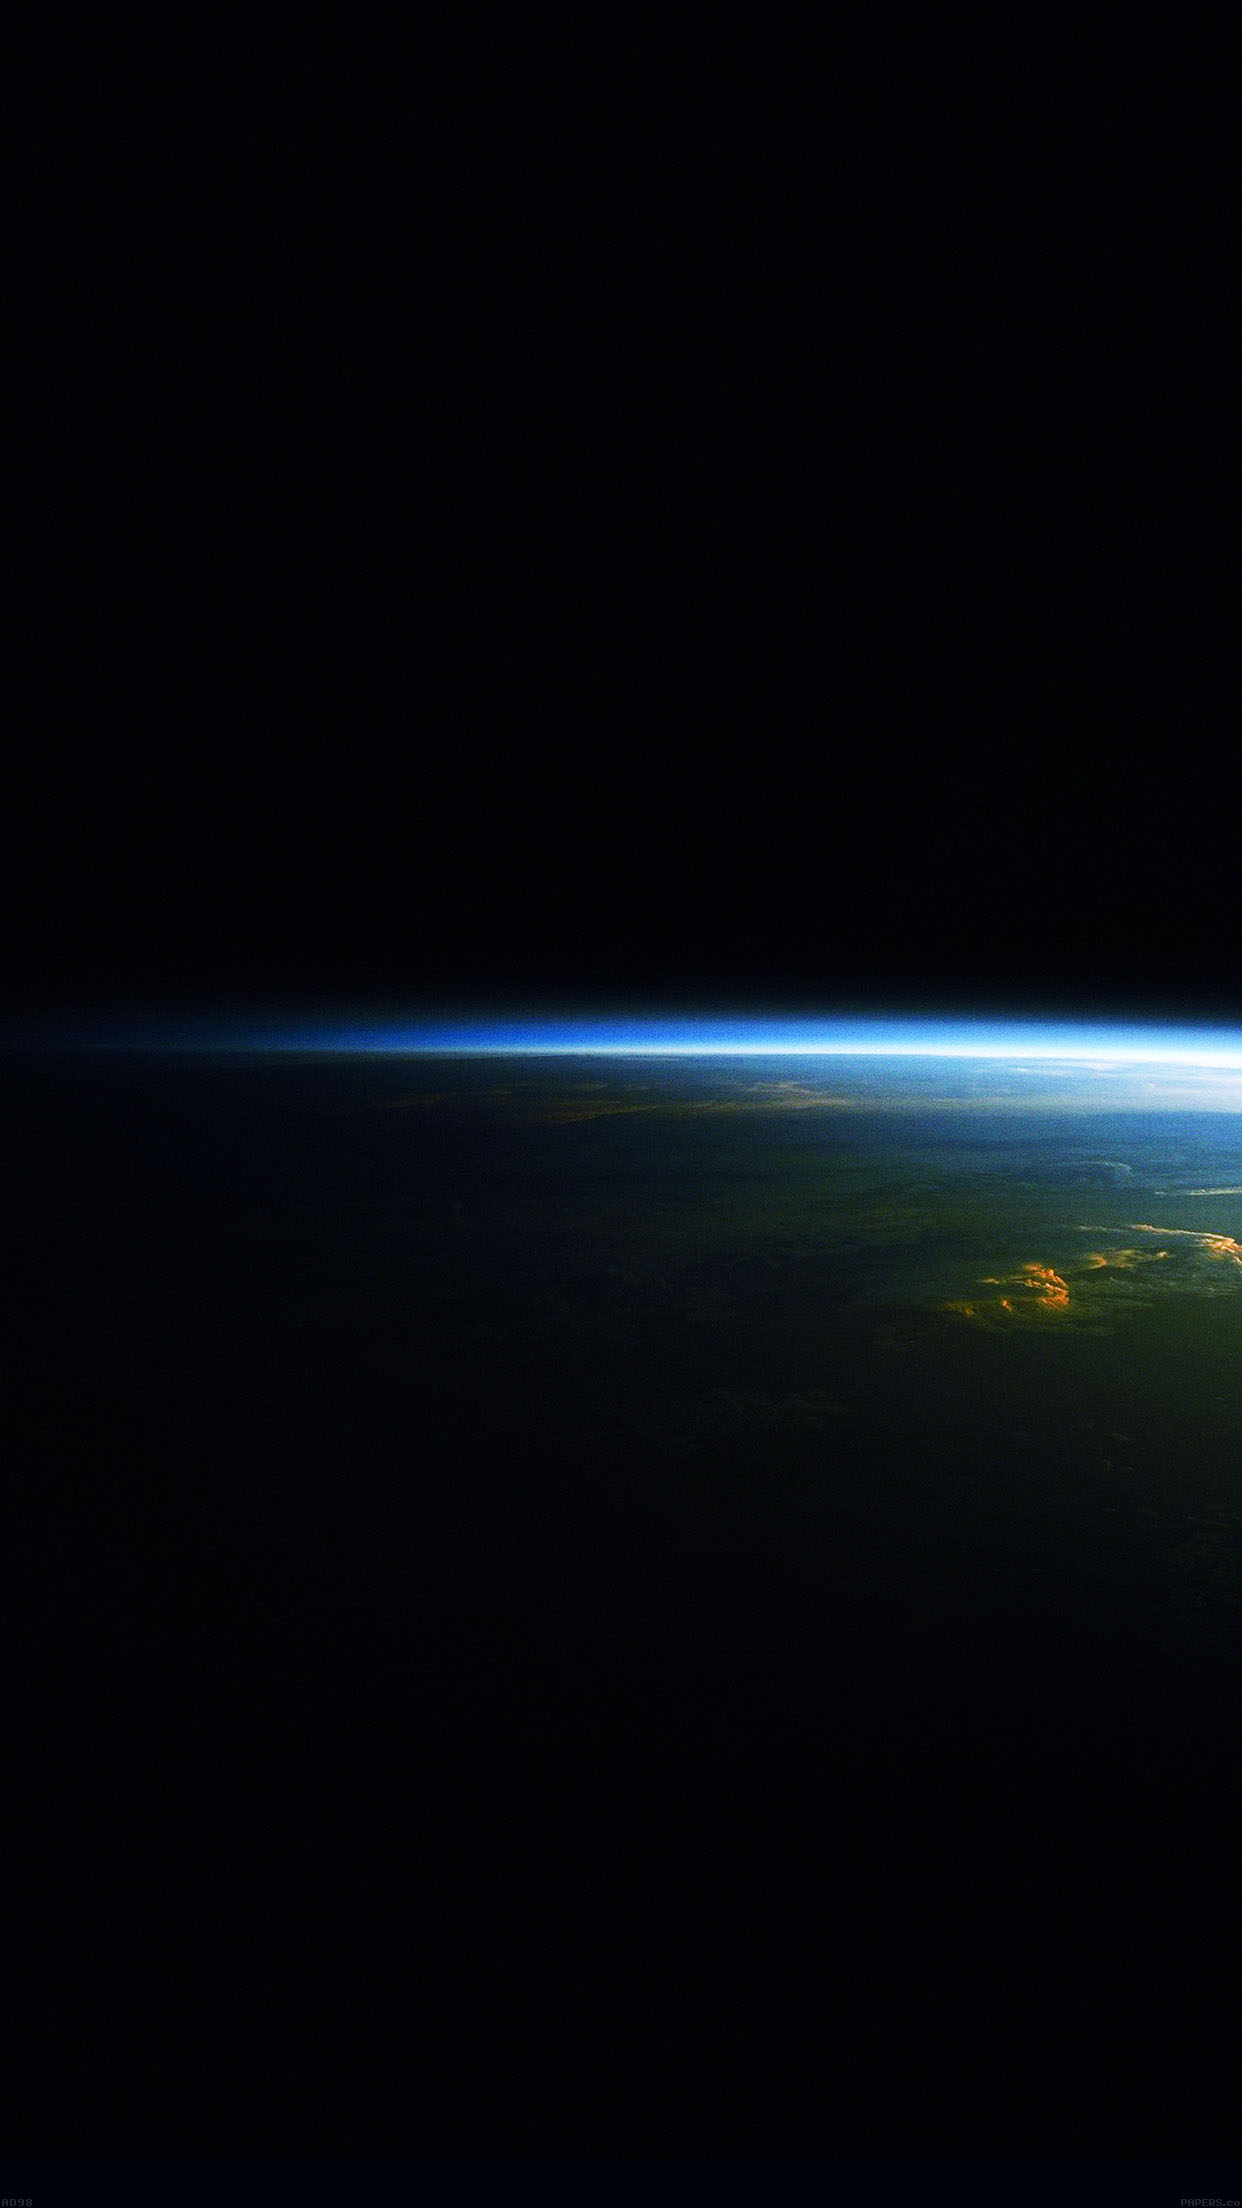 Earth At Night Horizon Space Android Wallpaper 1242x2208